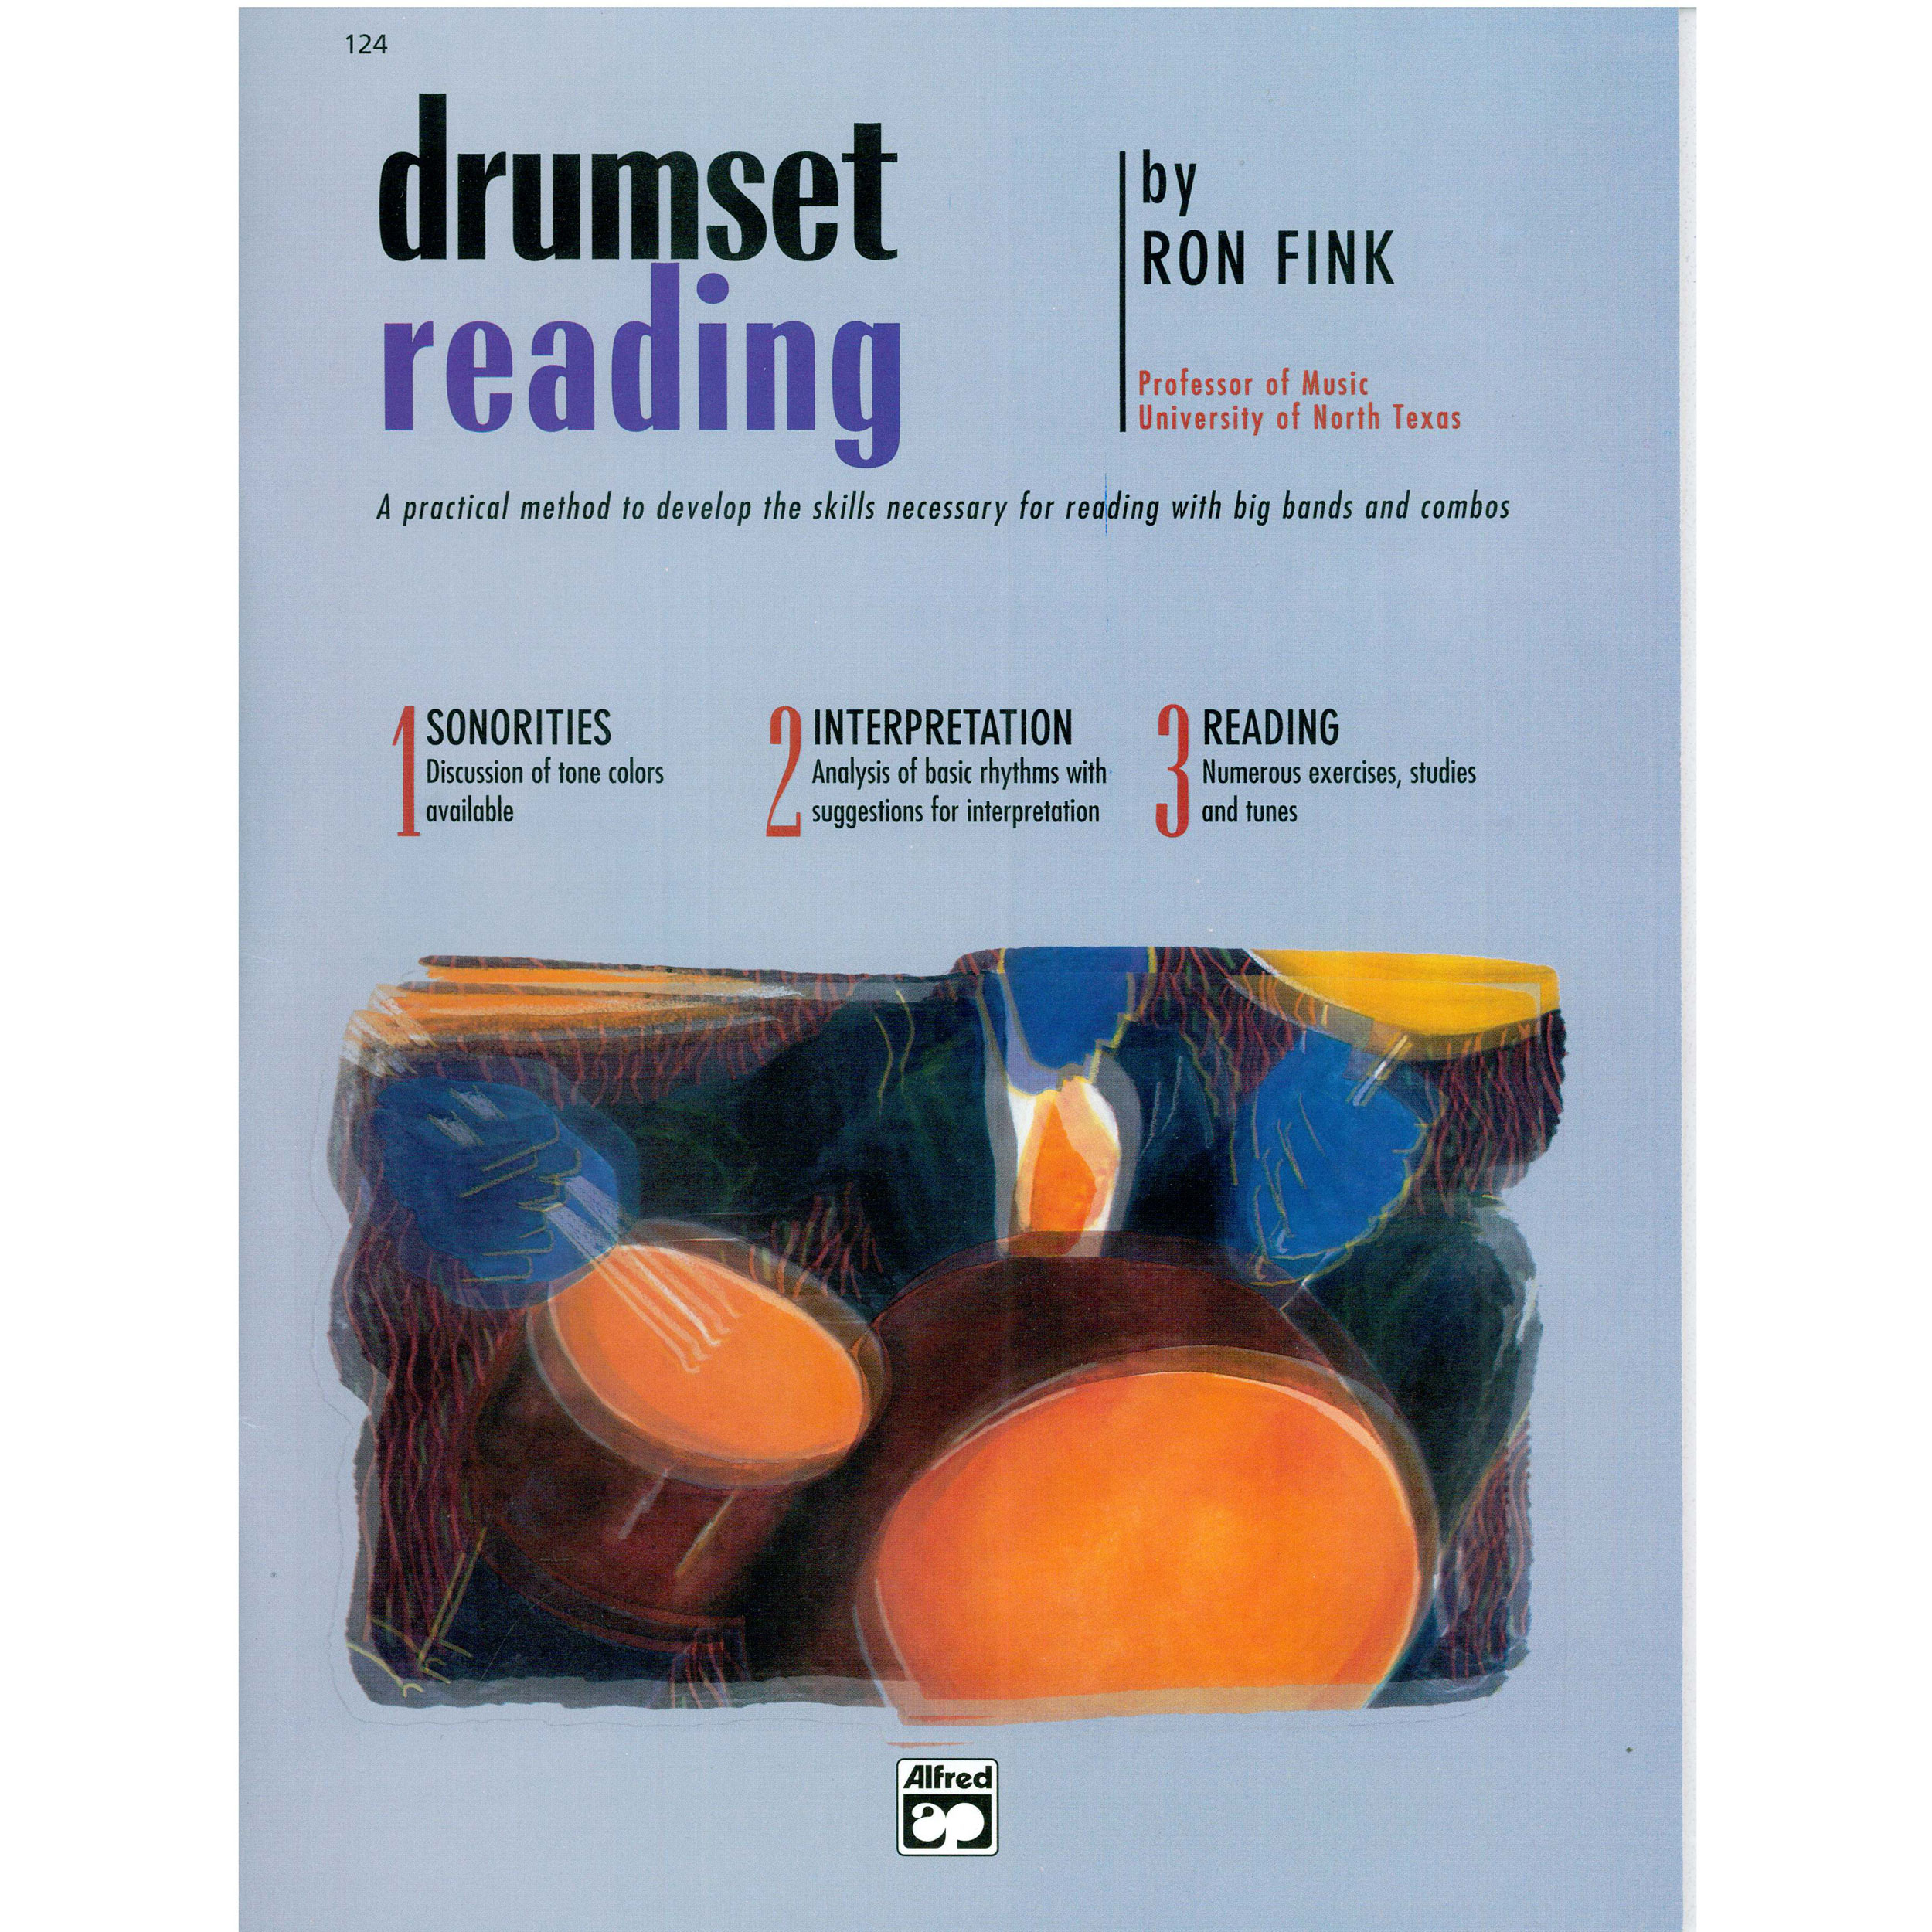 Drumset Reading by Ron Fink